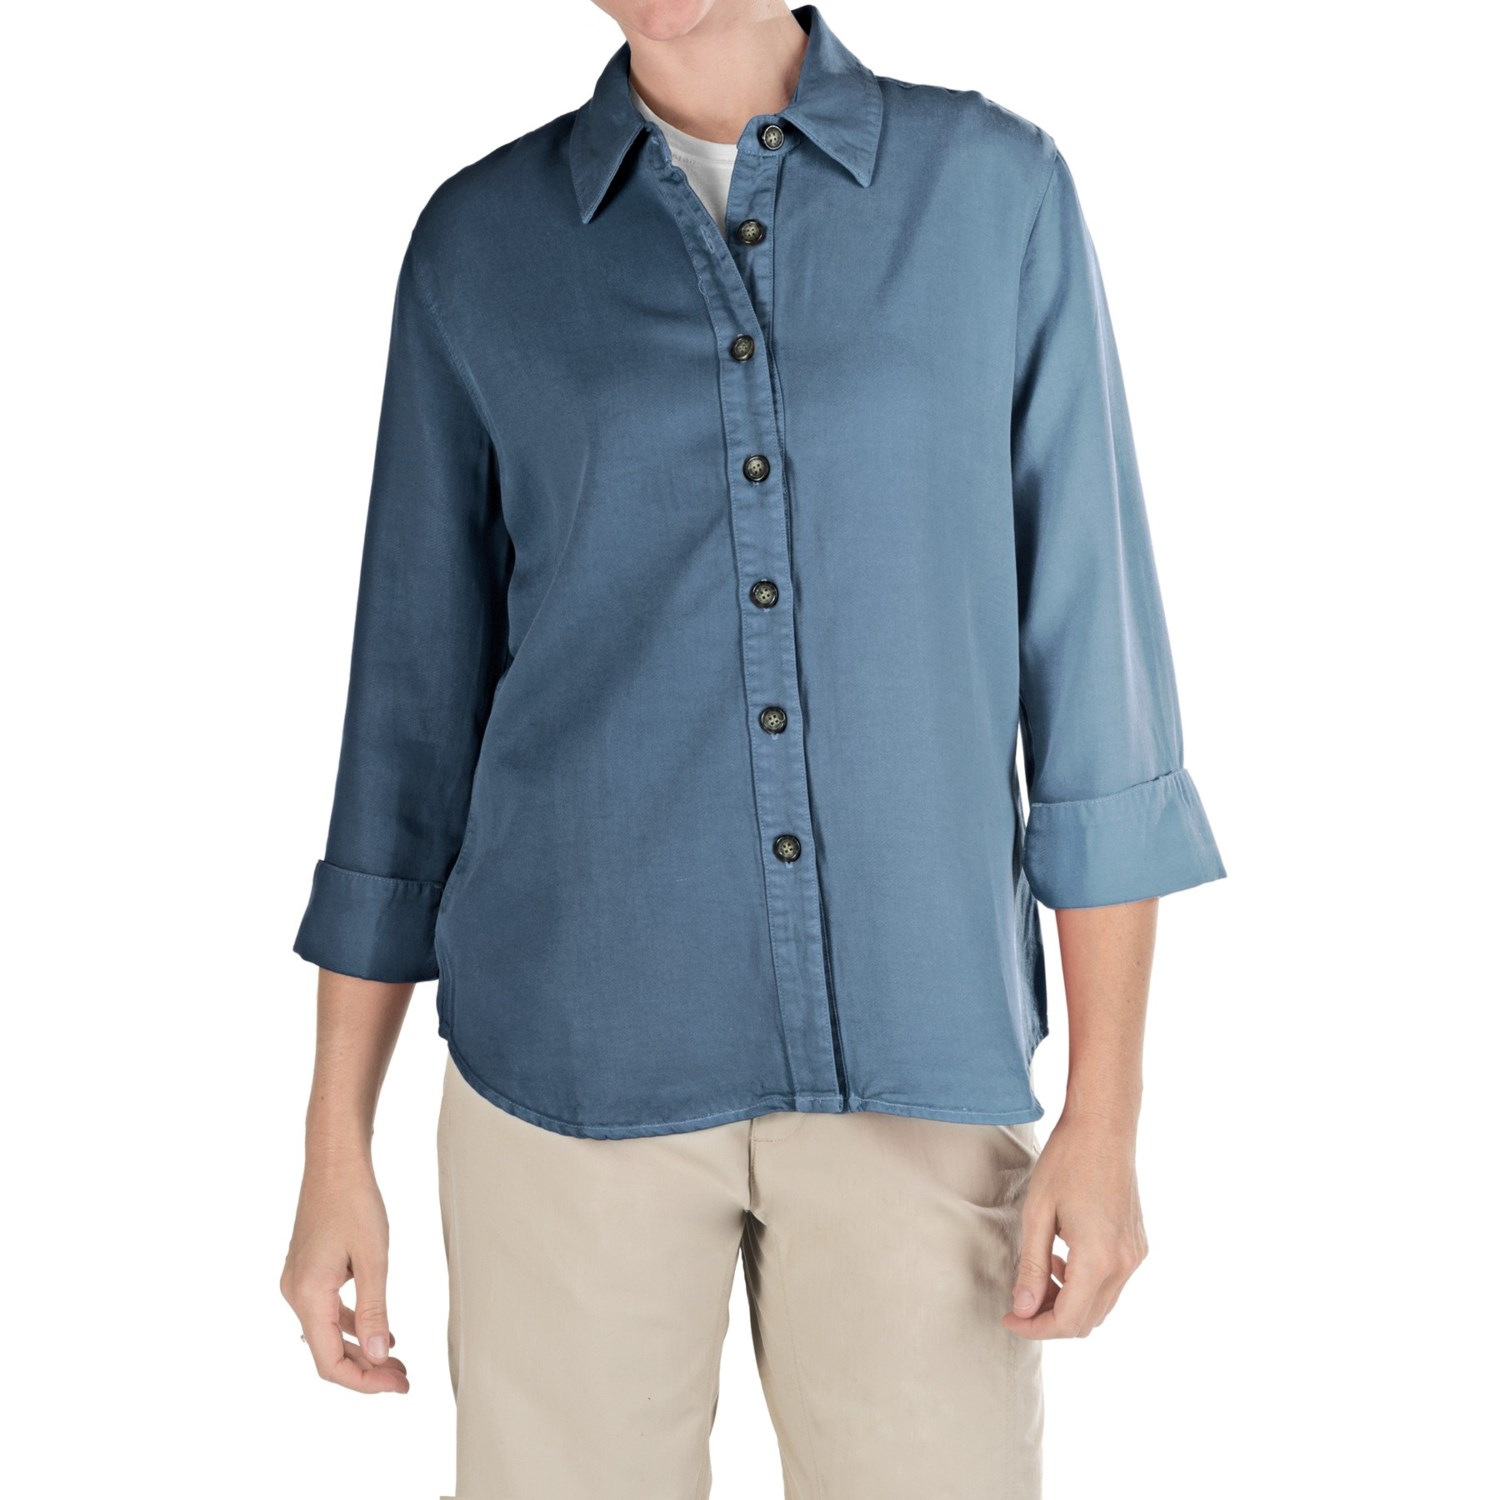 pulp tencel shirt for women 5290a save 91